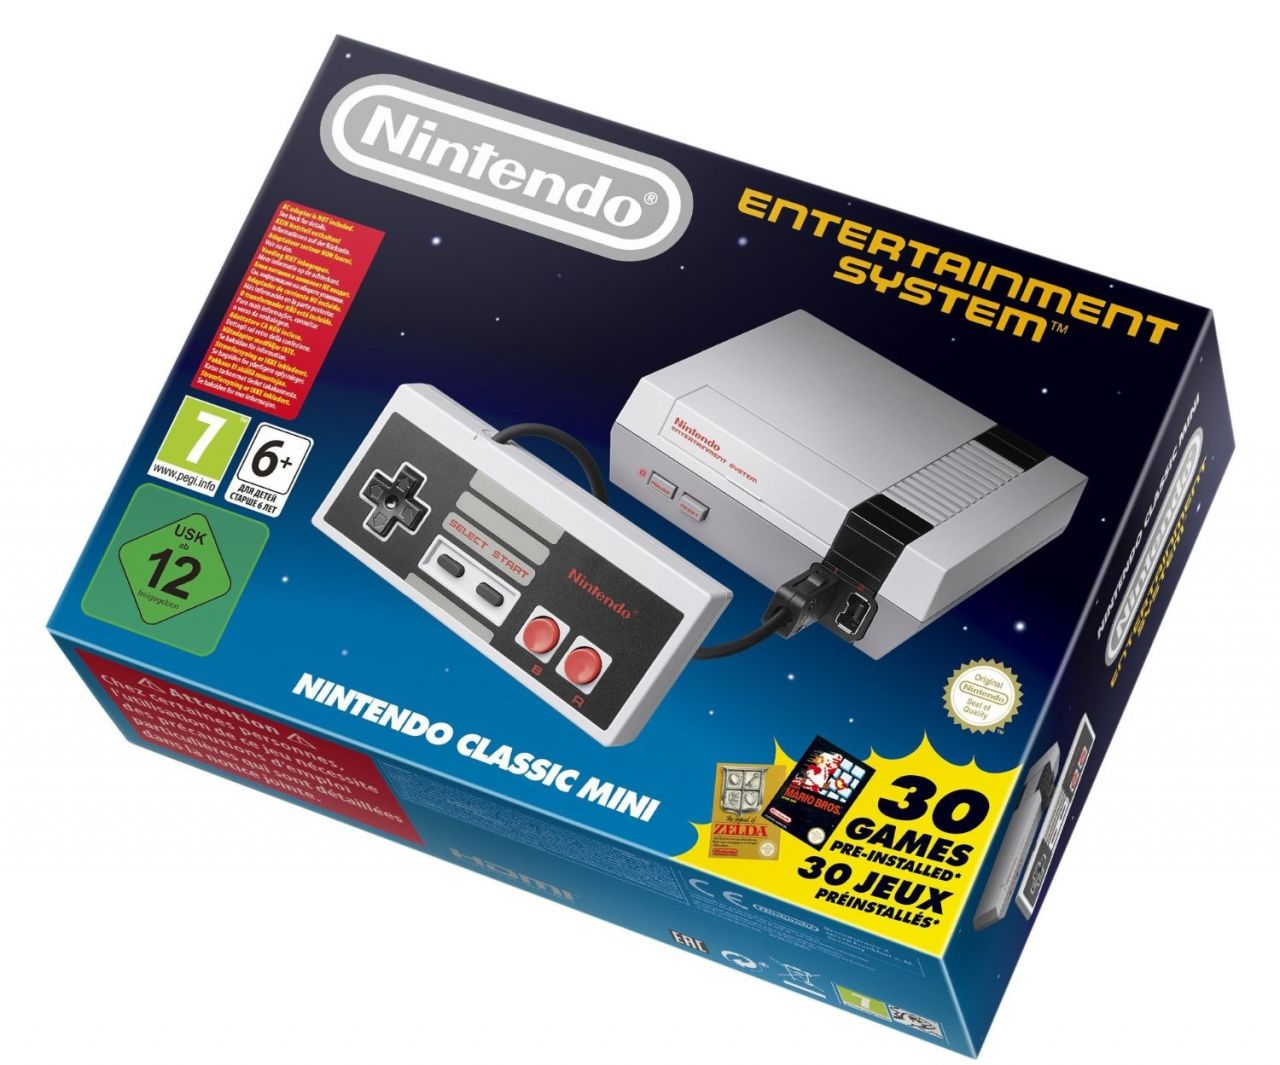 [Expiré] Restock : NES Mini Classic disponible sur Amazon.FR à 69,99 euros